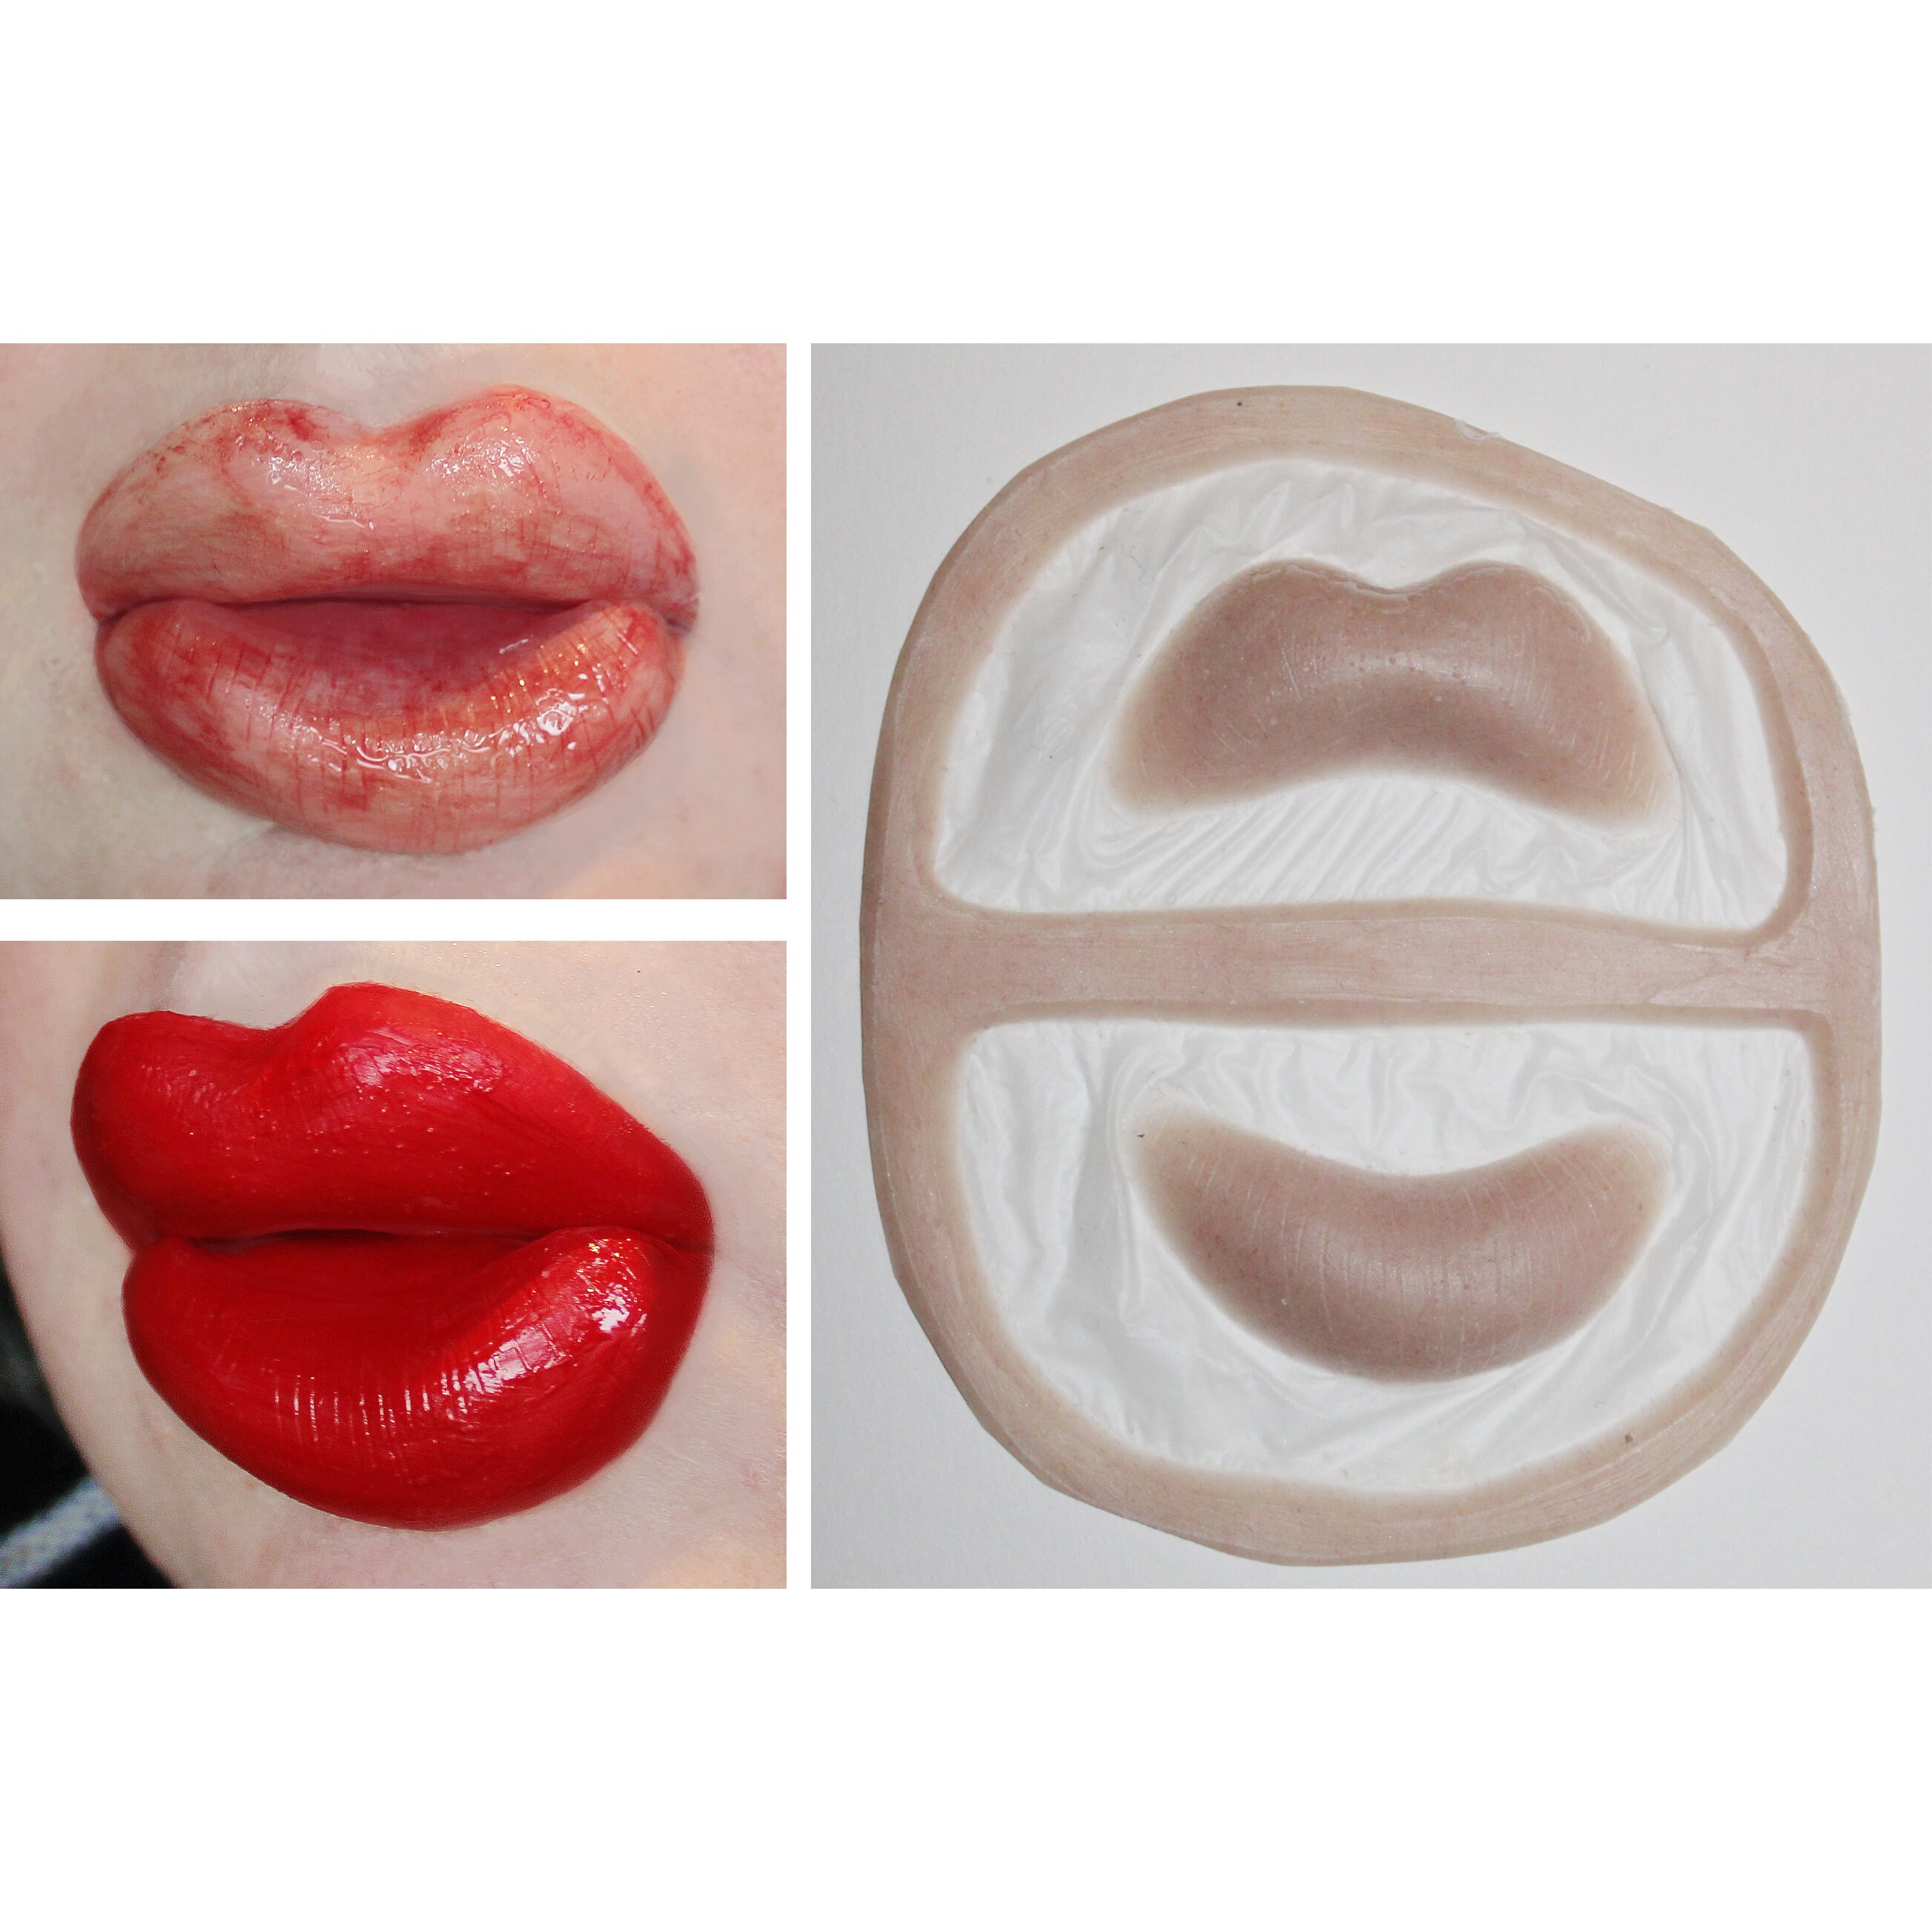 2 sets of Unpainted Silicone Prosthetic Lips.